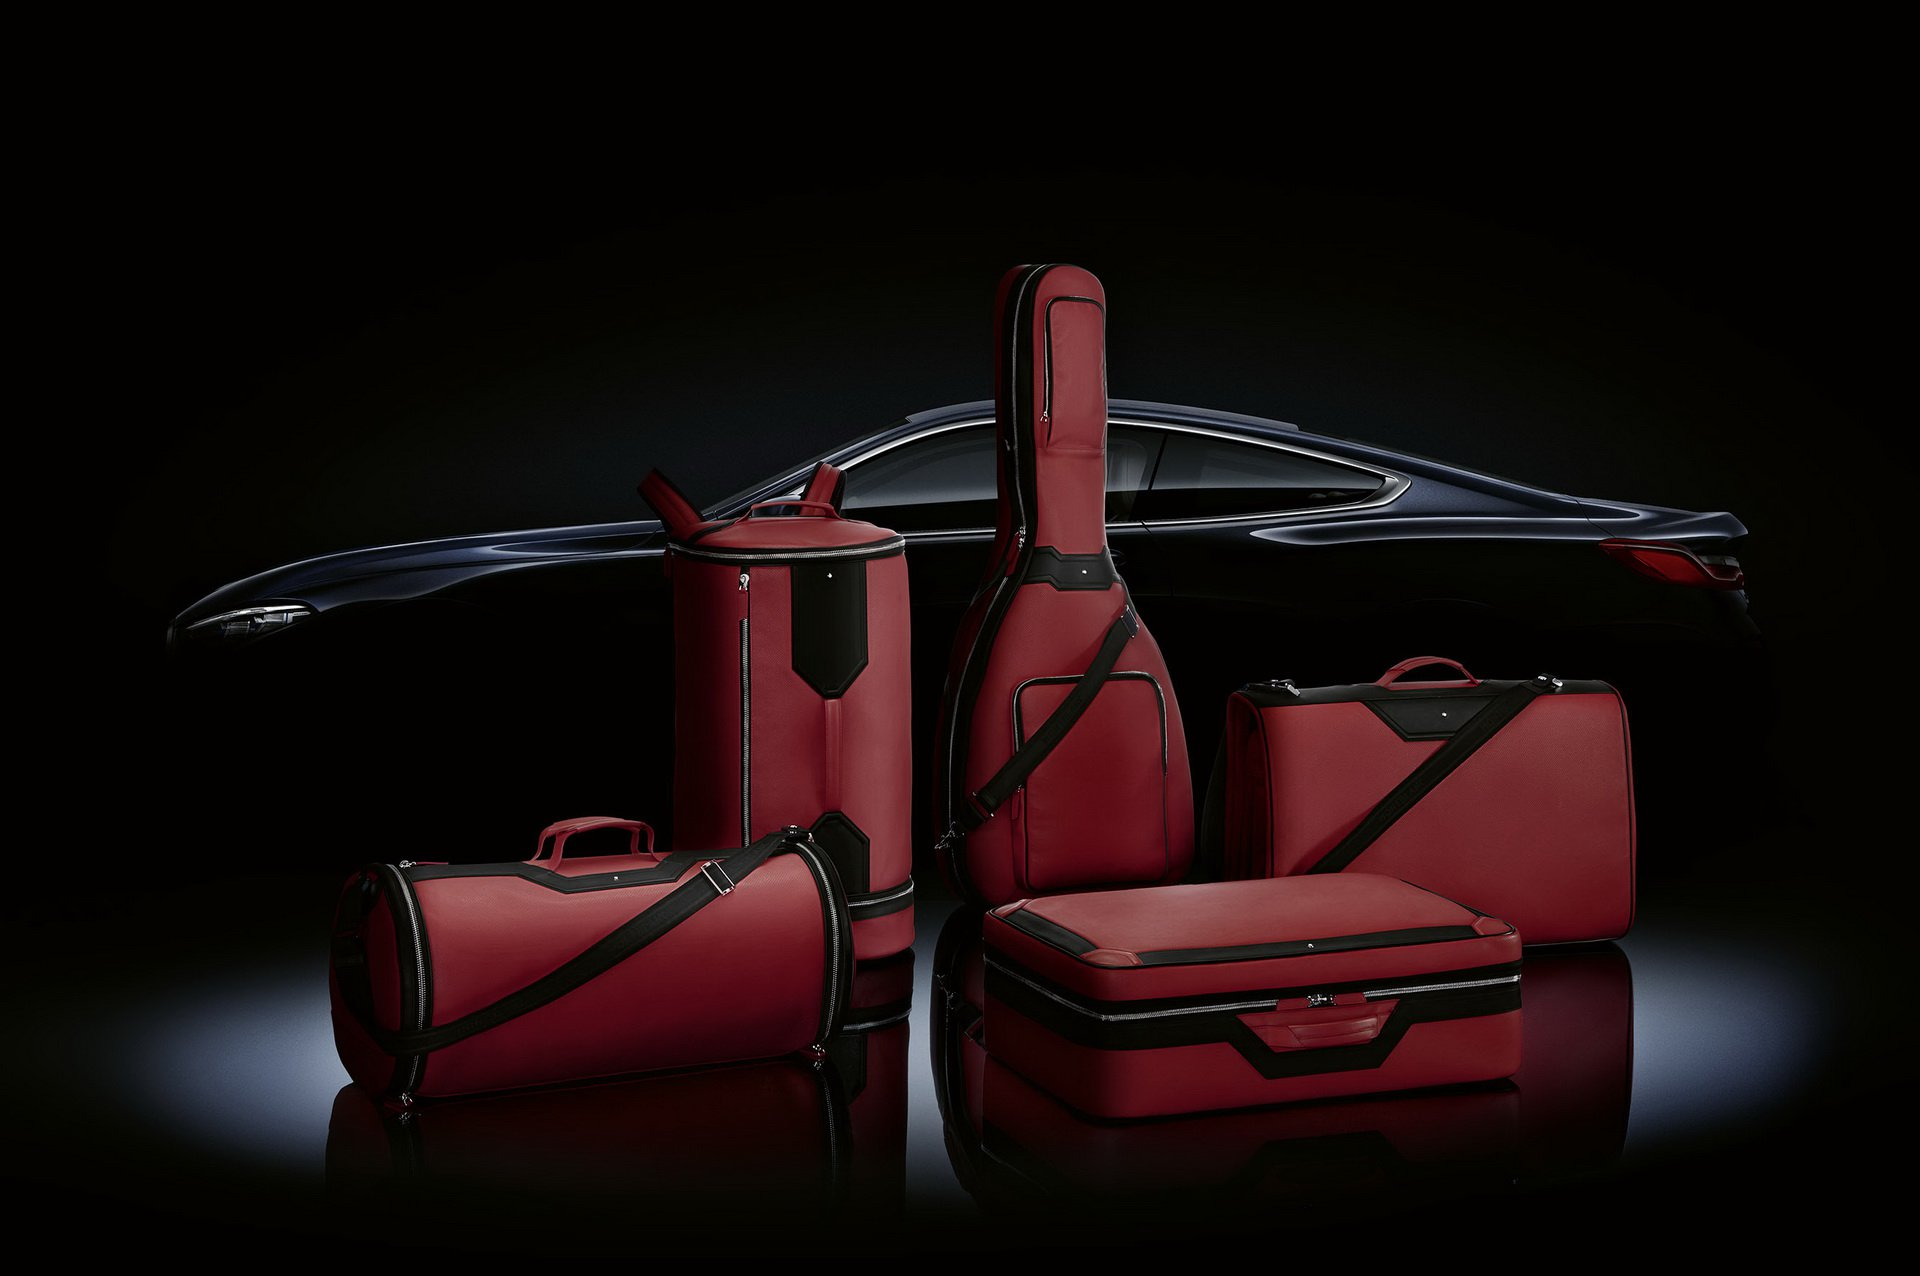 Montblanc Luggage set for BMW 8-series (1)